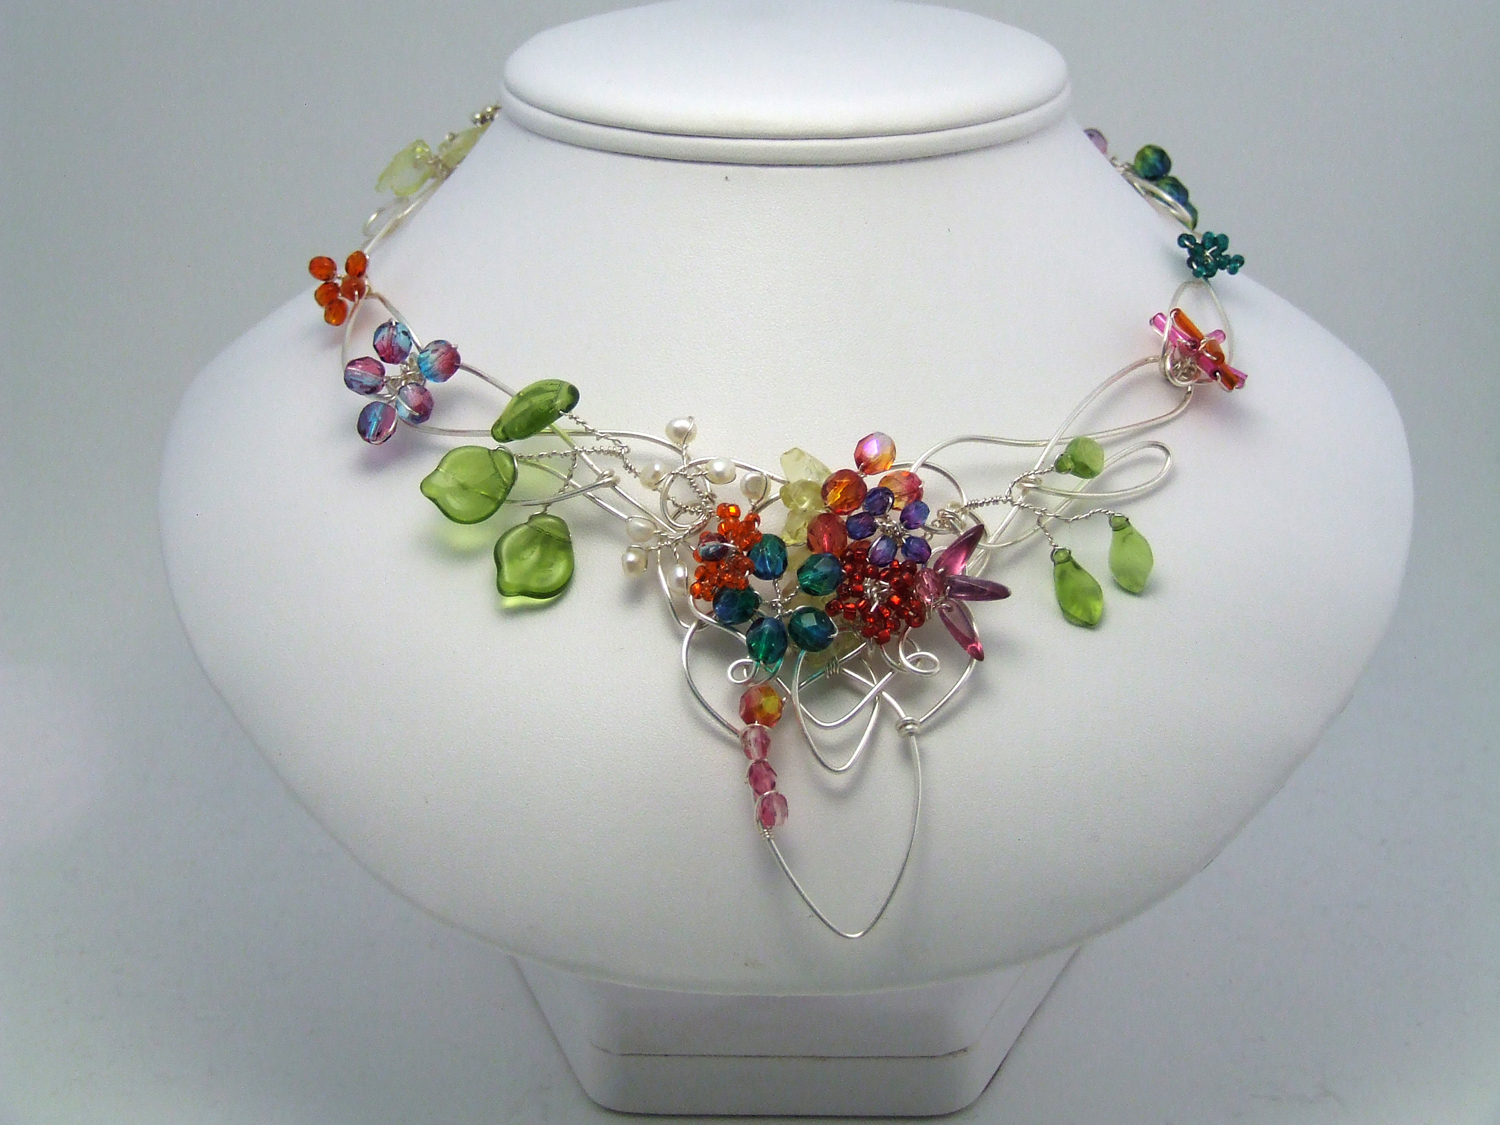 celtic garden necklace with wire bead flowers by Gayle Bird